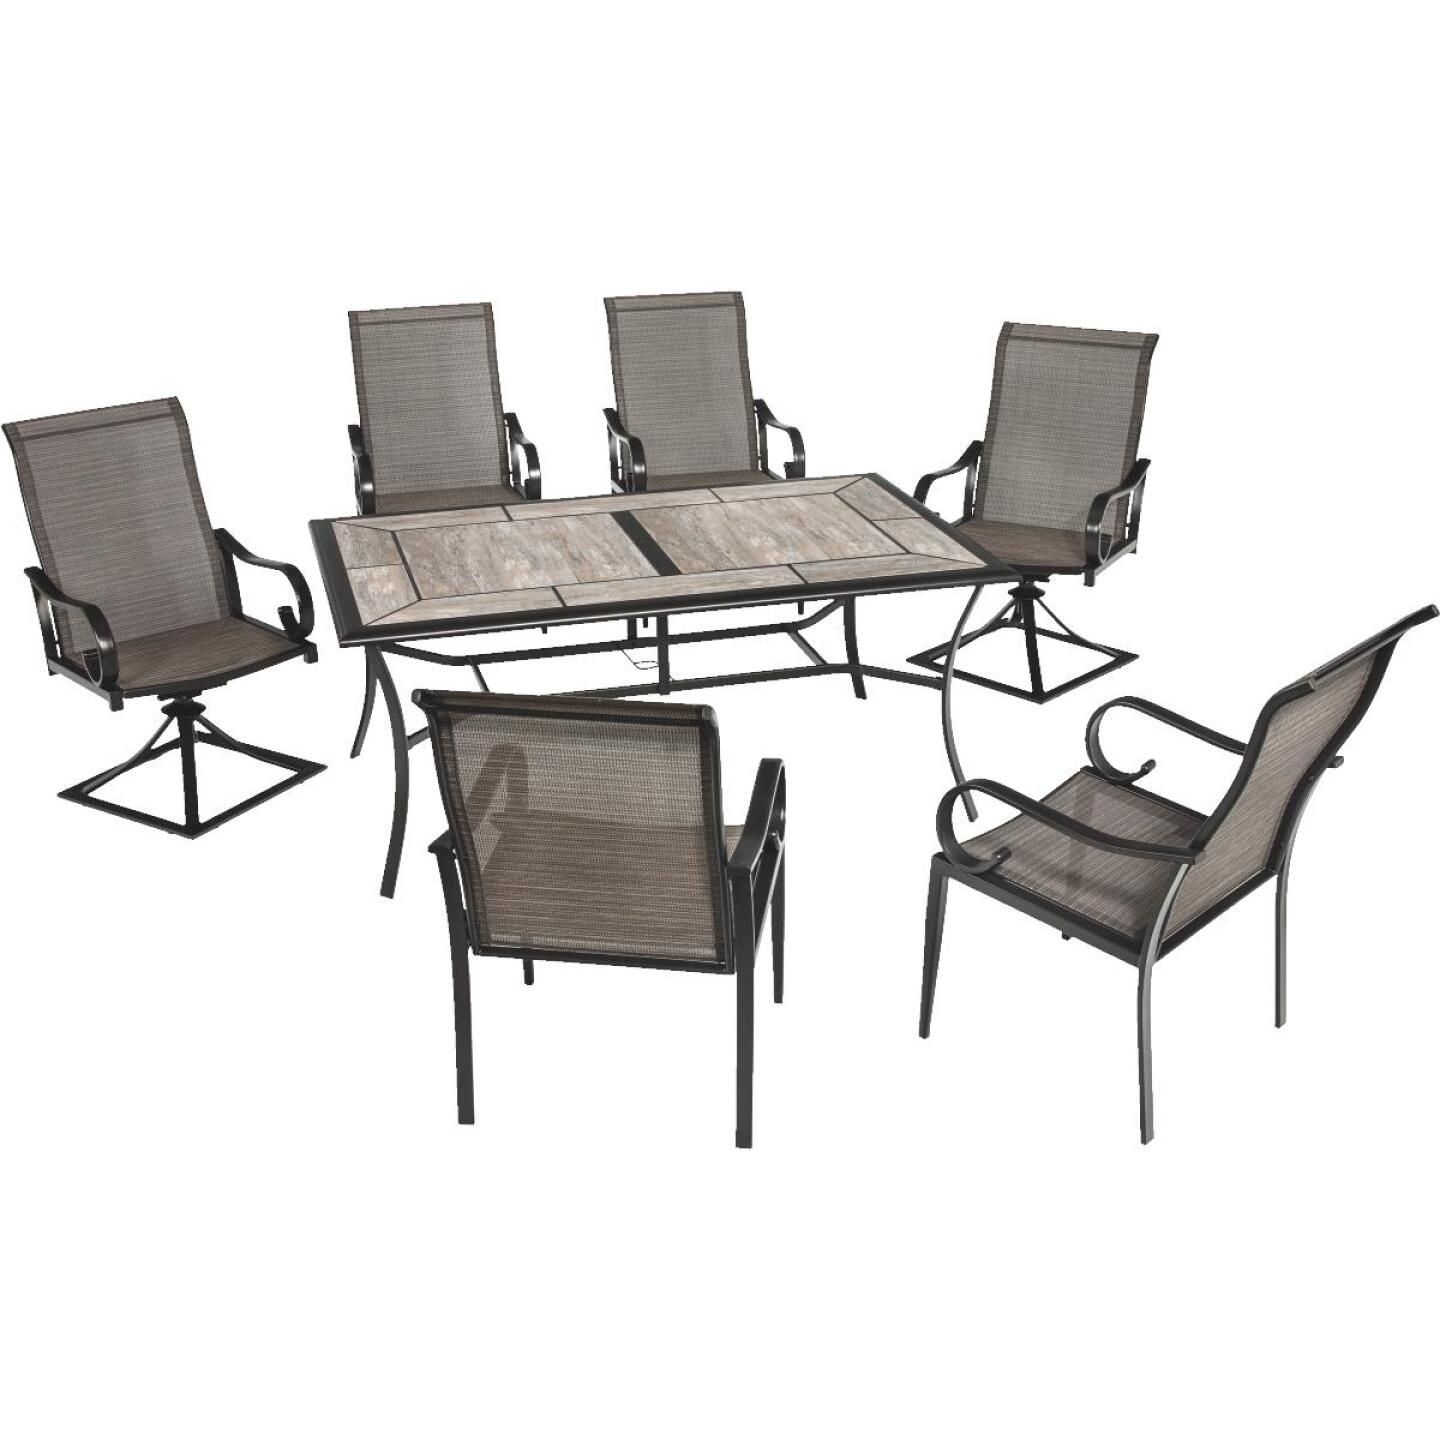 Outdoor Expressions Berkshire 7-Piece Dining Set Image 340